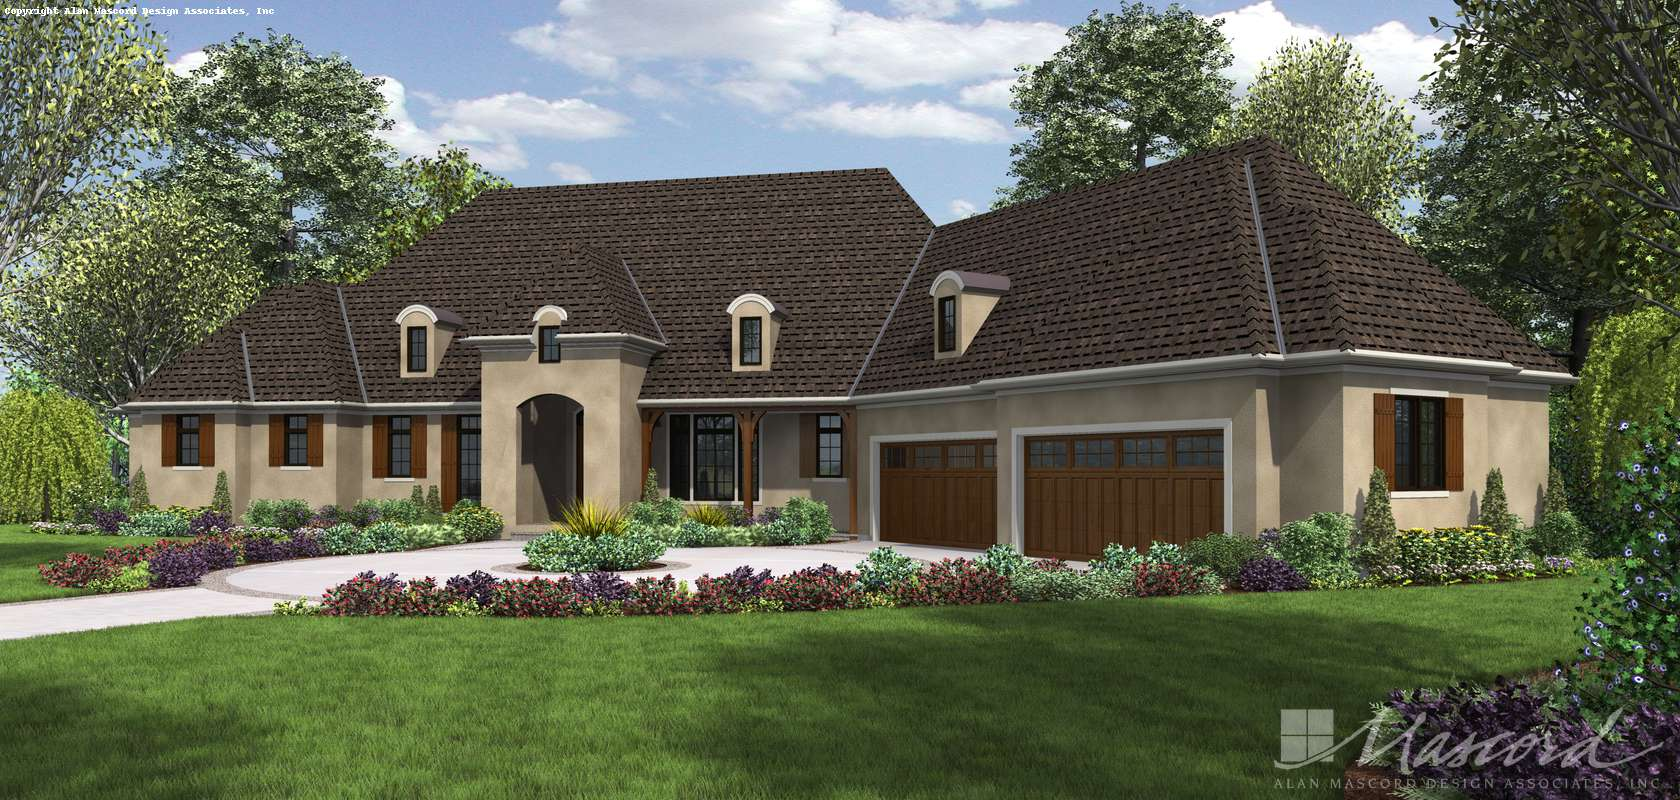 Mascord House Plan 2476: The Thatcher